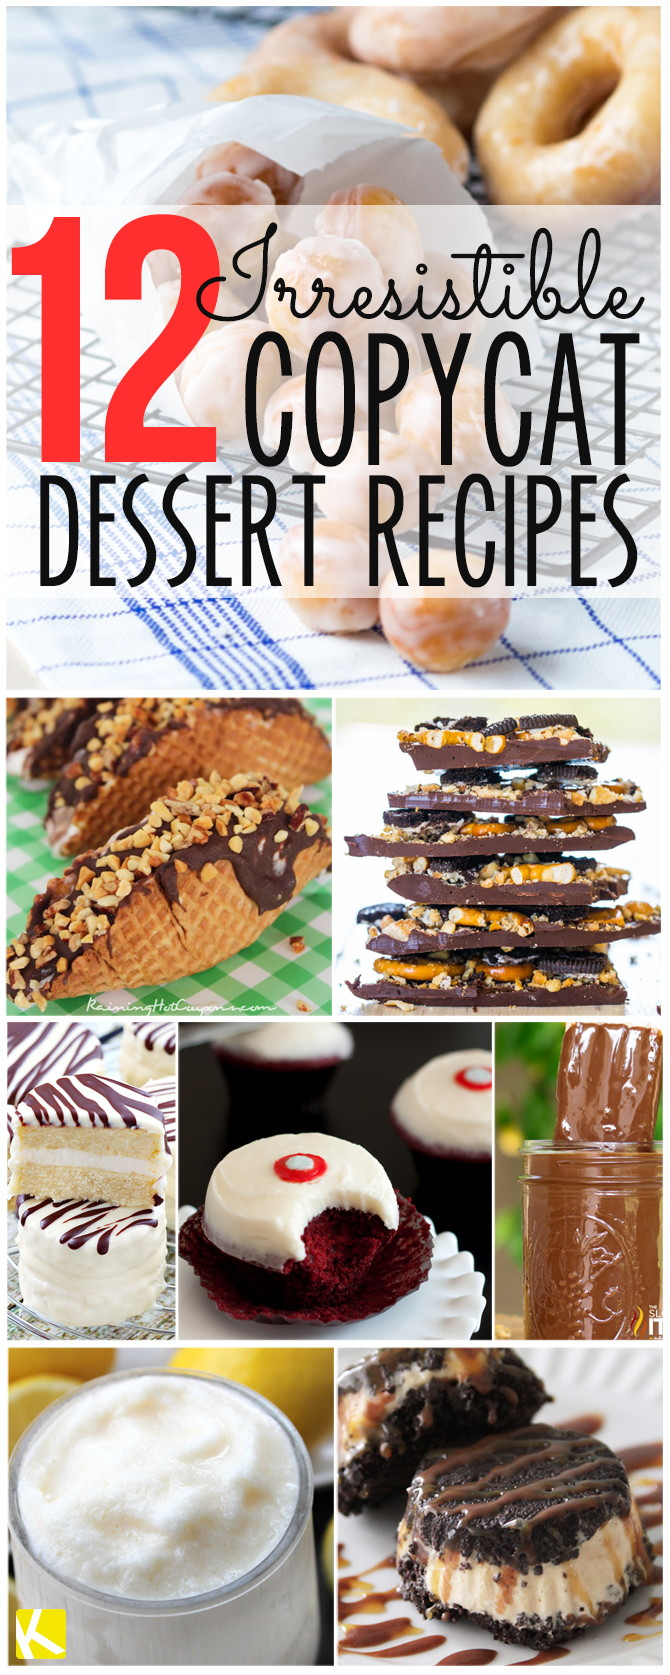 12 Irresistible Copycat Dessert Recipes You Must Try